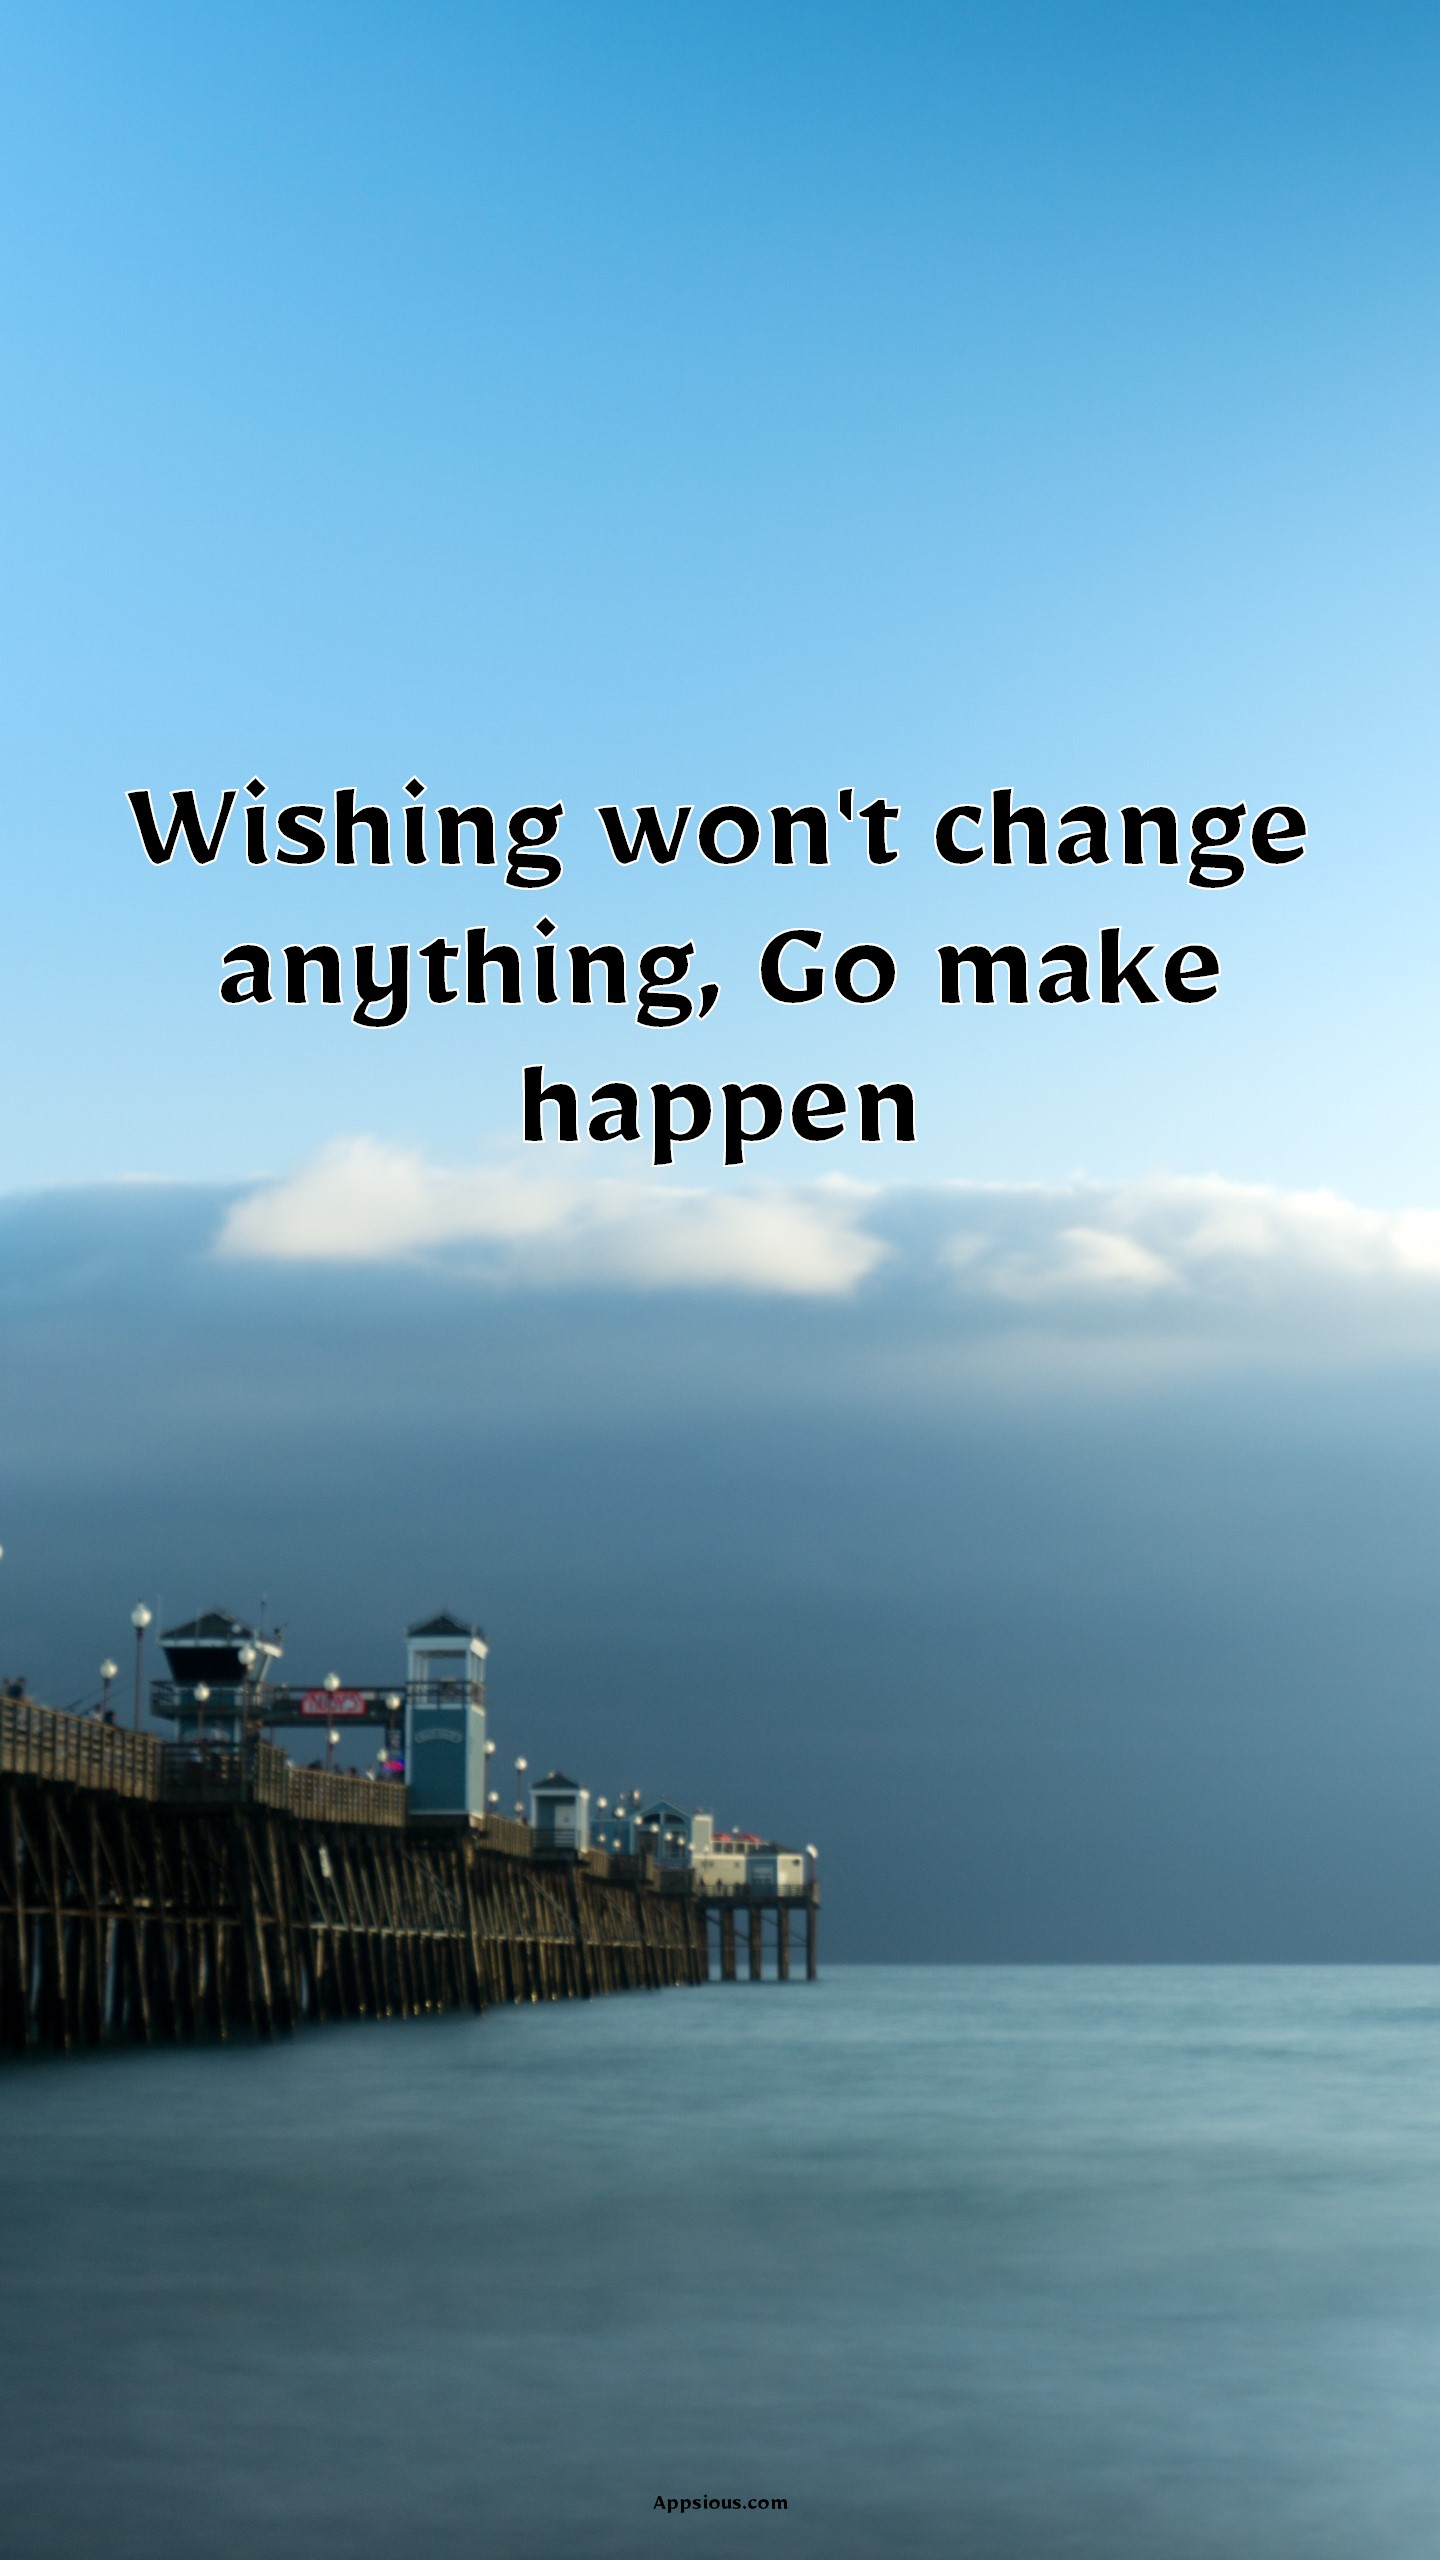 Wishing won't change anything, Go make happen